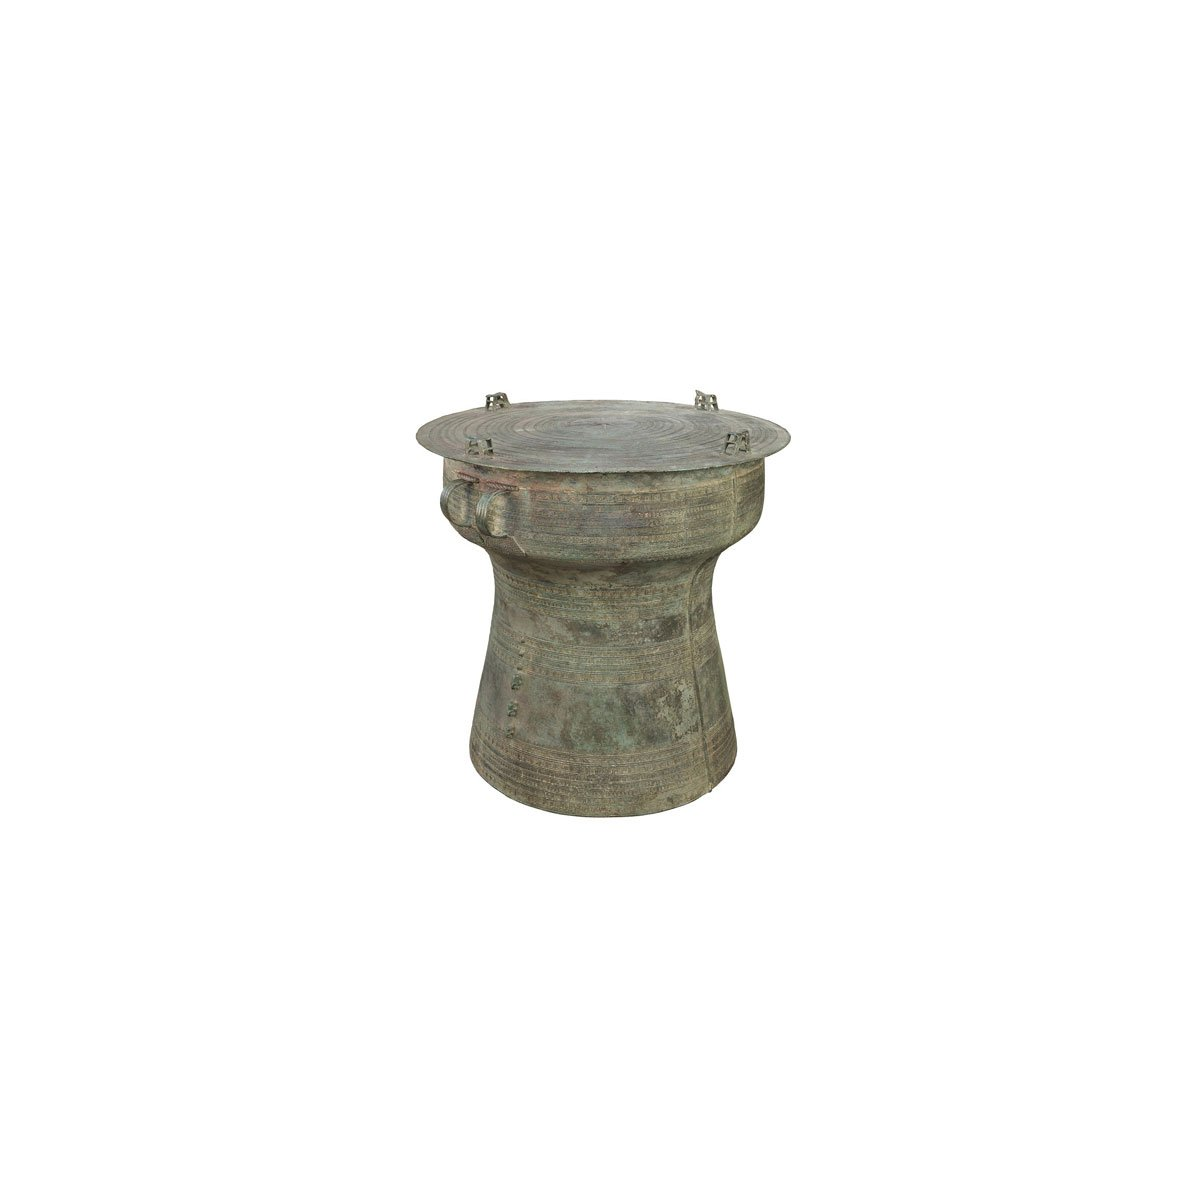 short rain drum antique replica solid bronze ceramic accent table raindrums indoor decor inspiring seats and coffee tables round side marble top threshold sun shade target